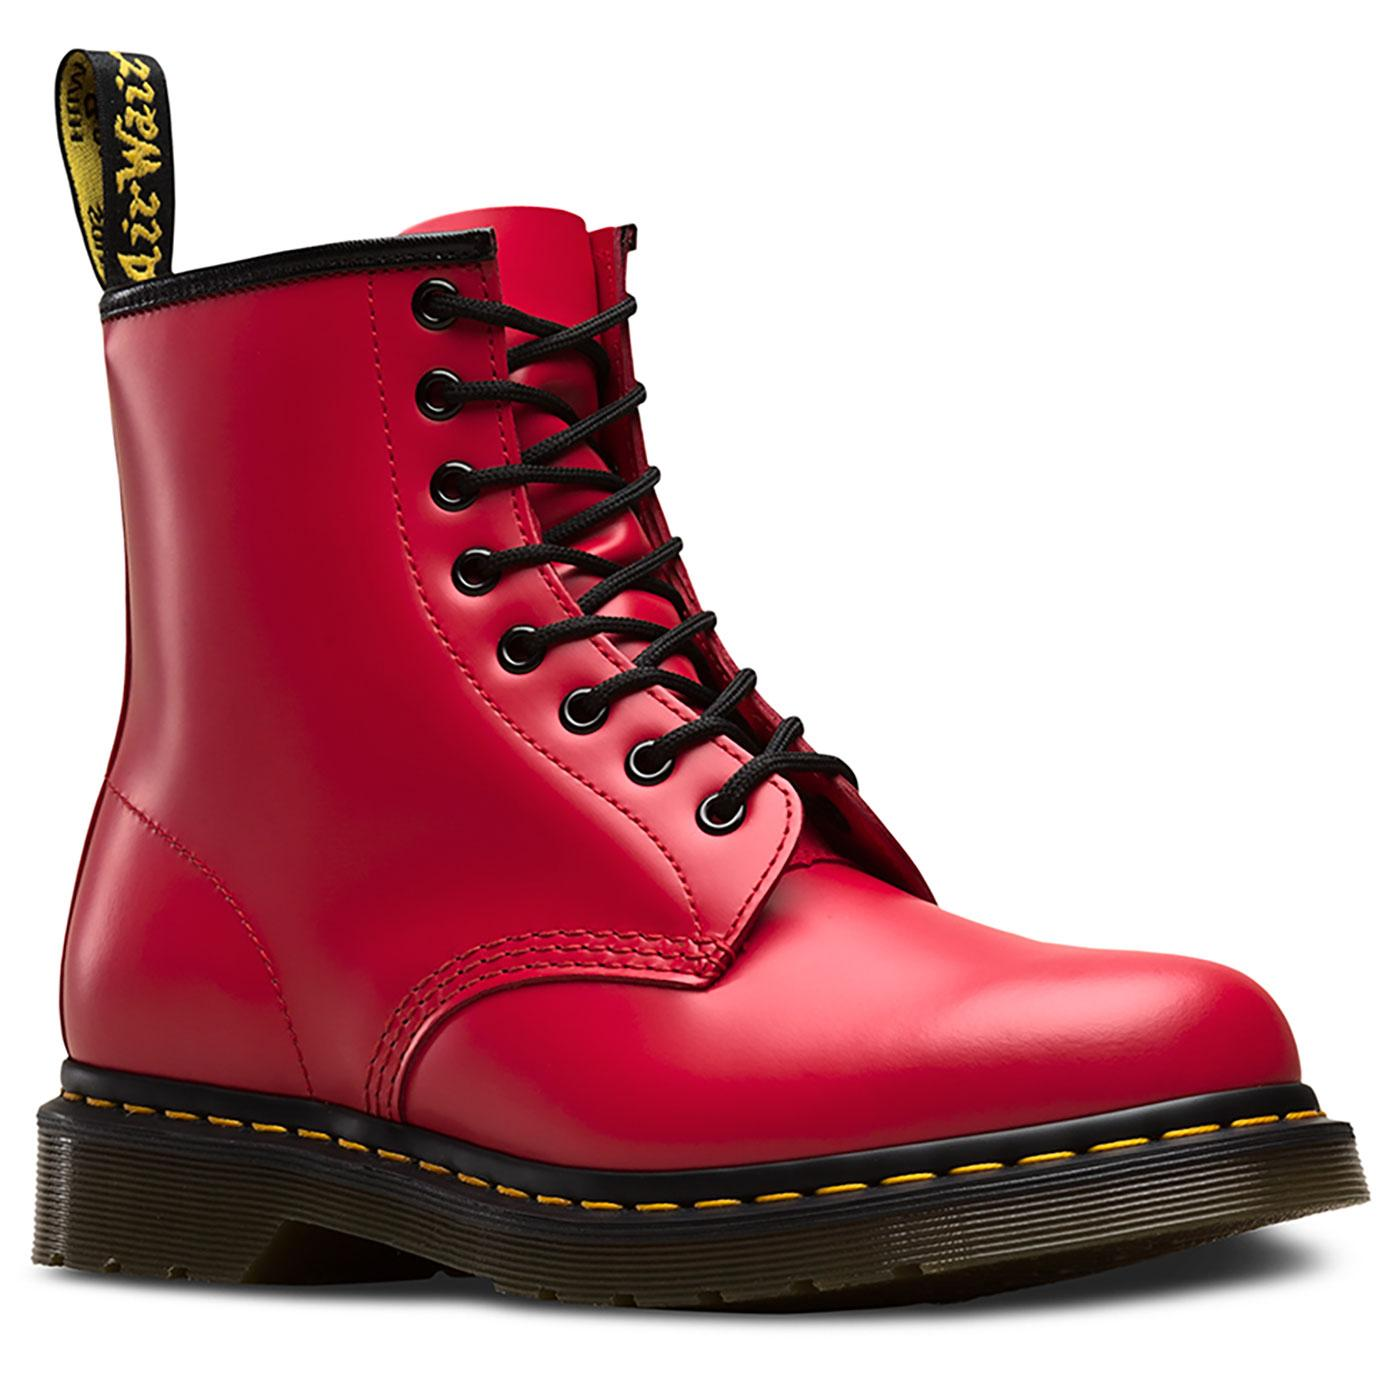 1460 Colour Pop DR MARTENS Retro Smooth Boots Red